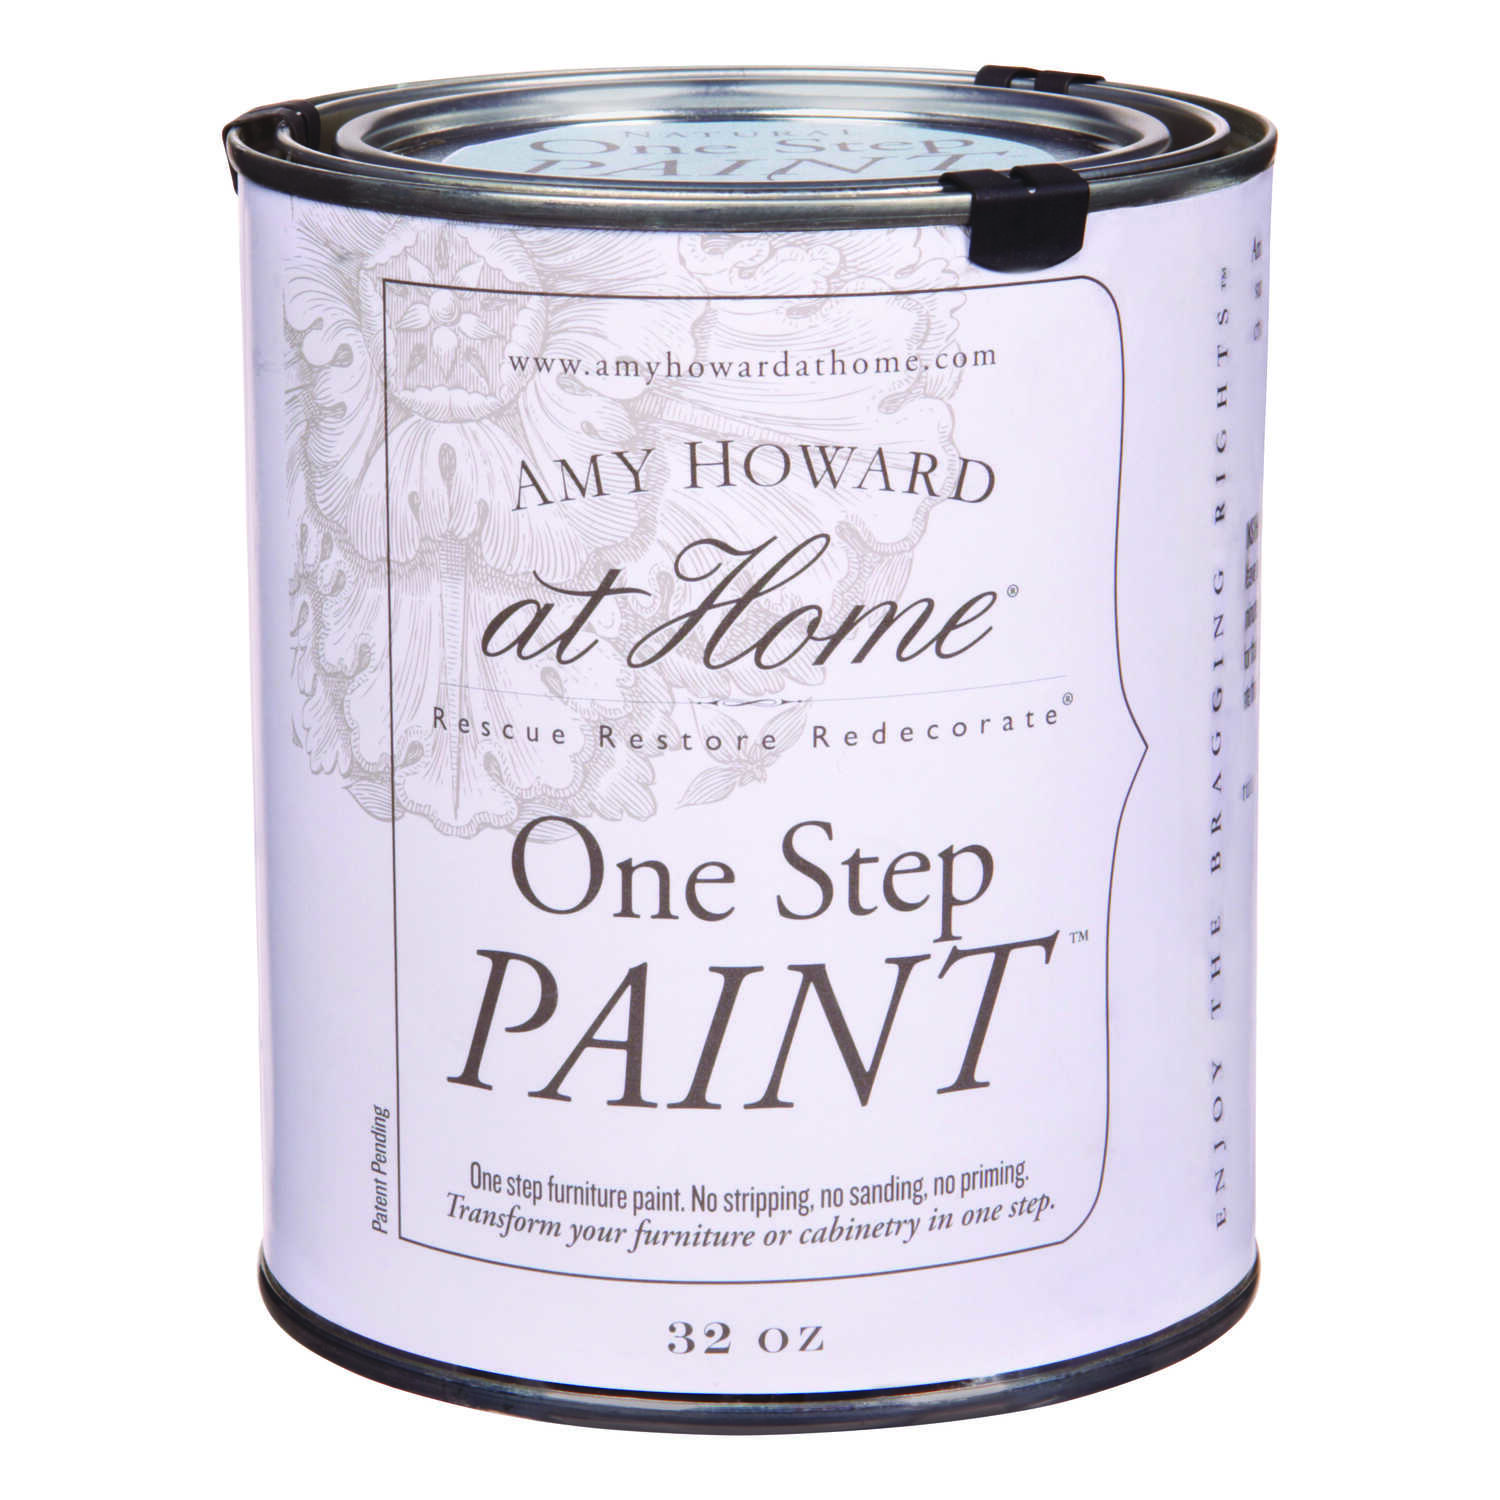 Amy Howard at Home  Flat Chalky Finish  Credenza  Latex  One Step Paint  32 oz.